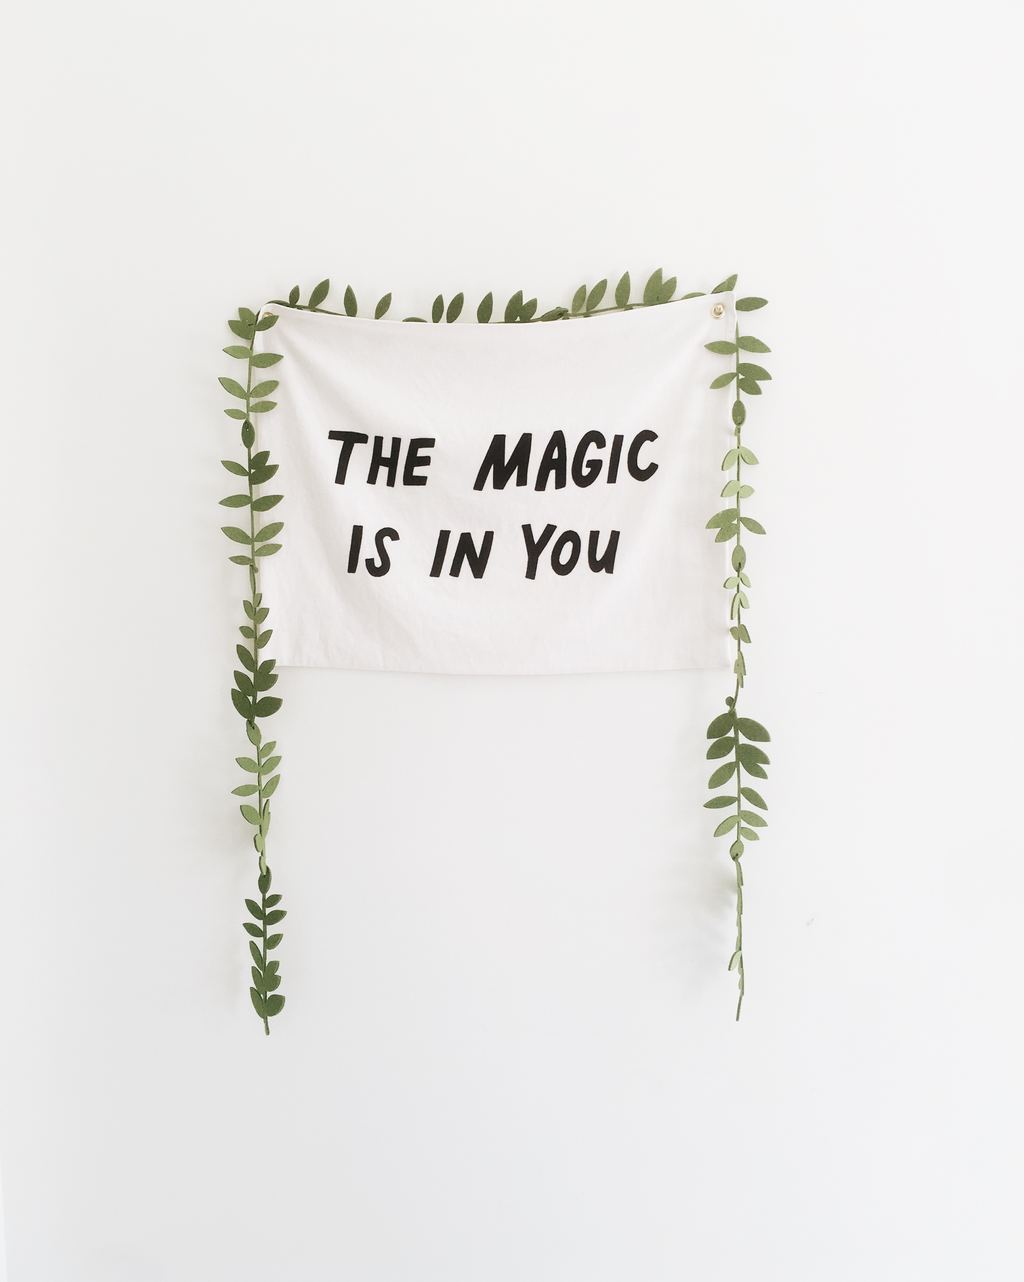 The magic is in you